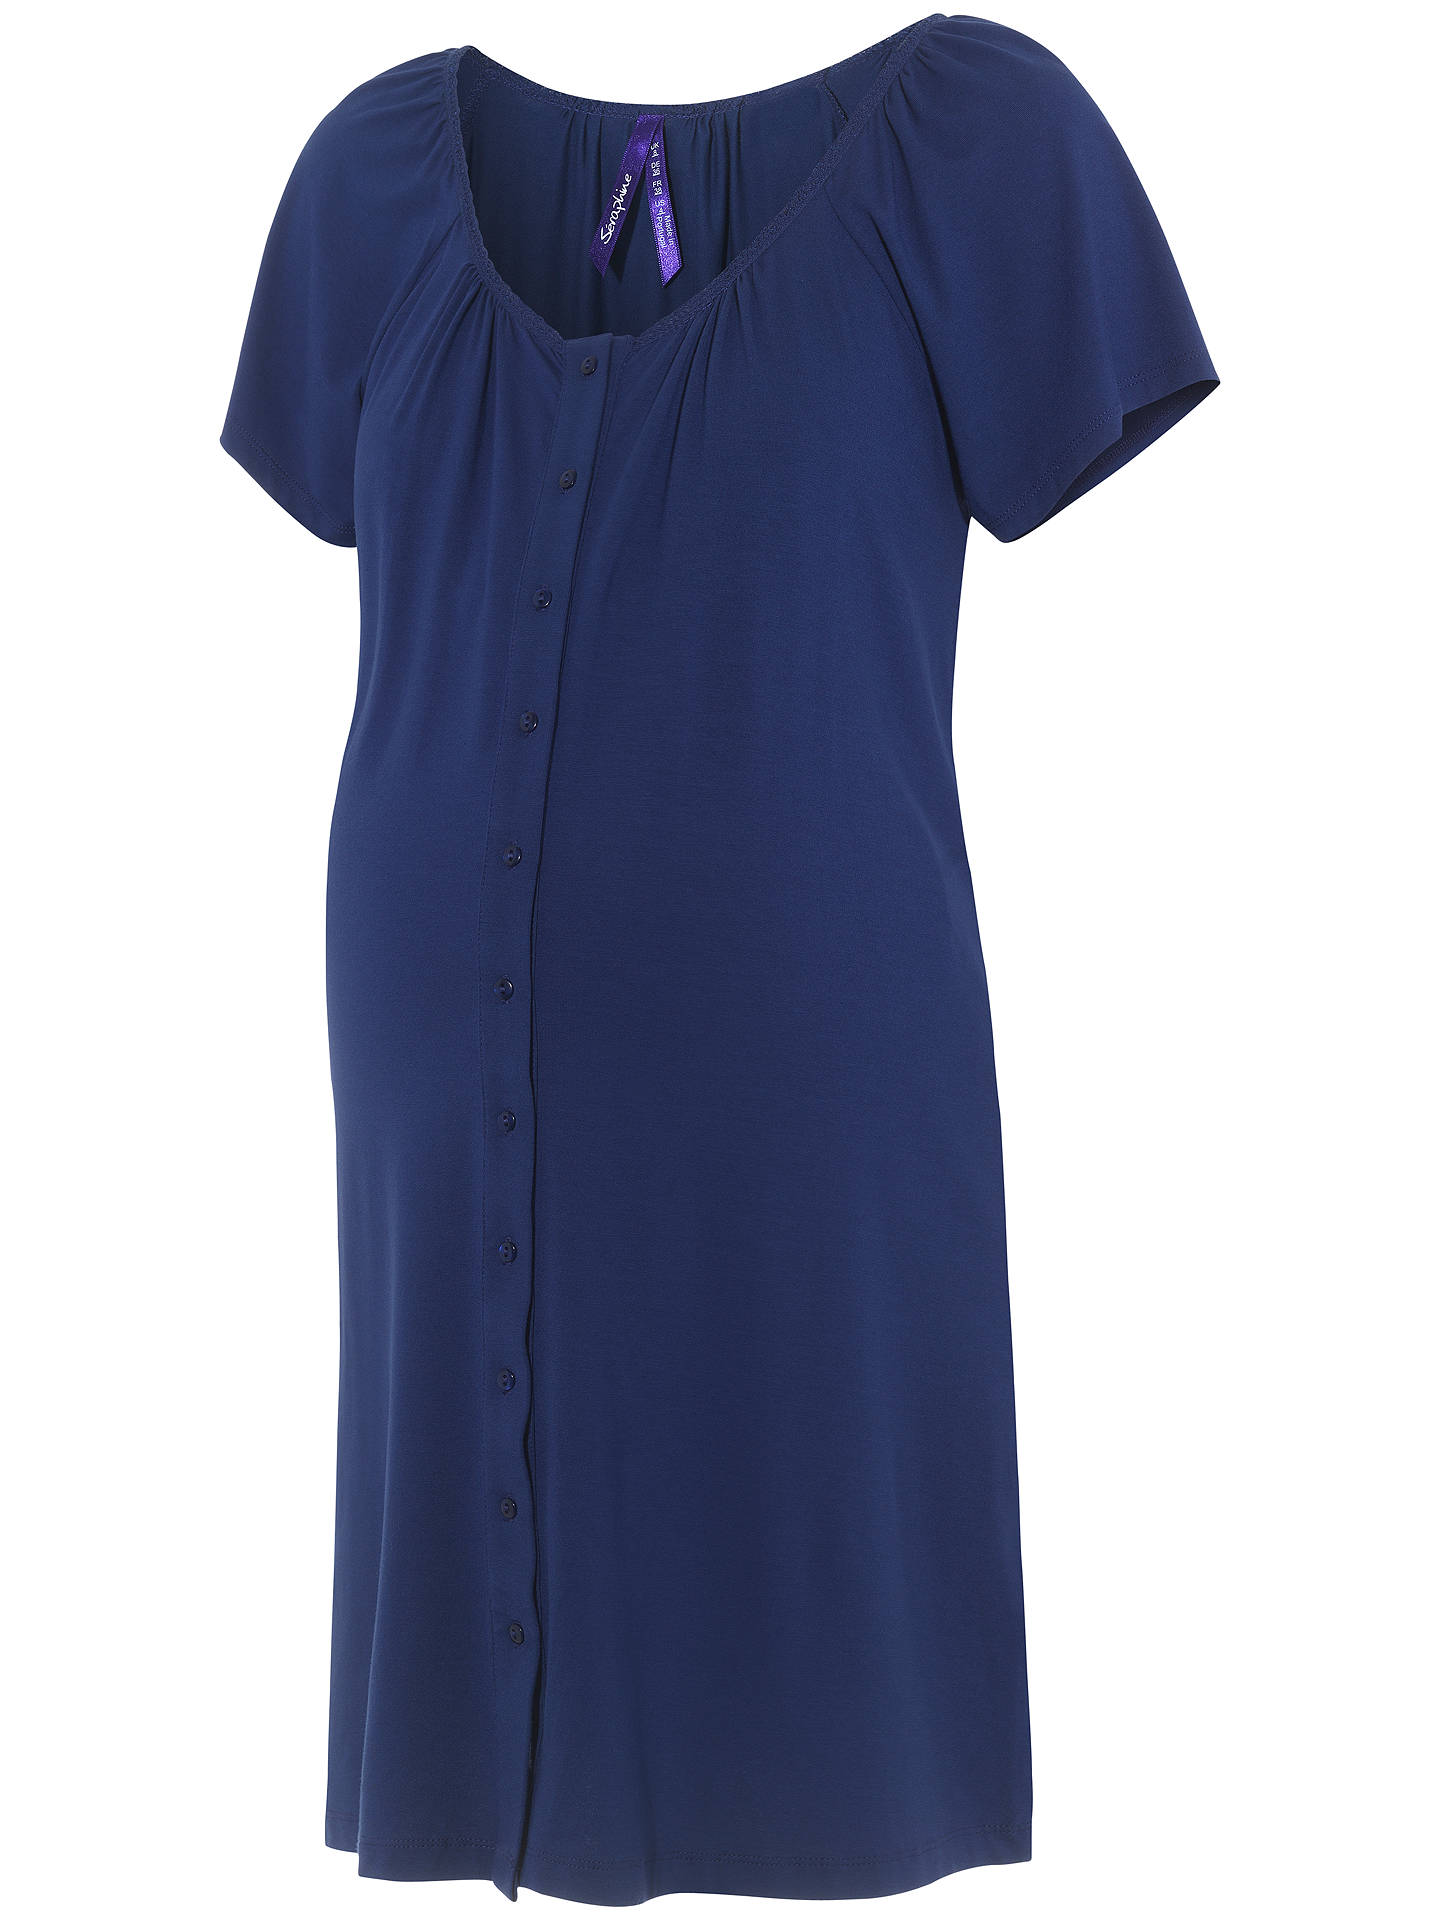 7795832f94405 ... Buy Séraphine Gemma Two-Button Maternity Nightdress, Mid Blue, 8 Online  at johnlewis